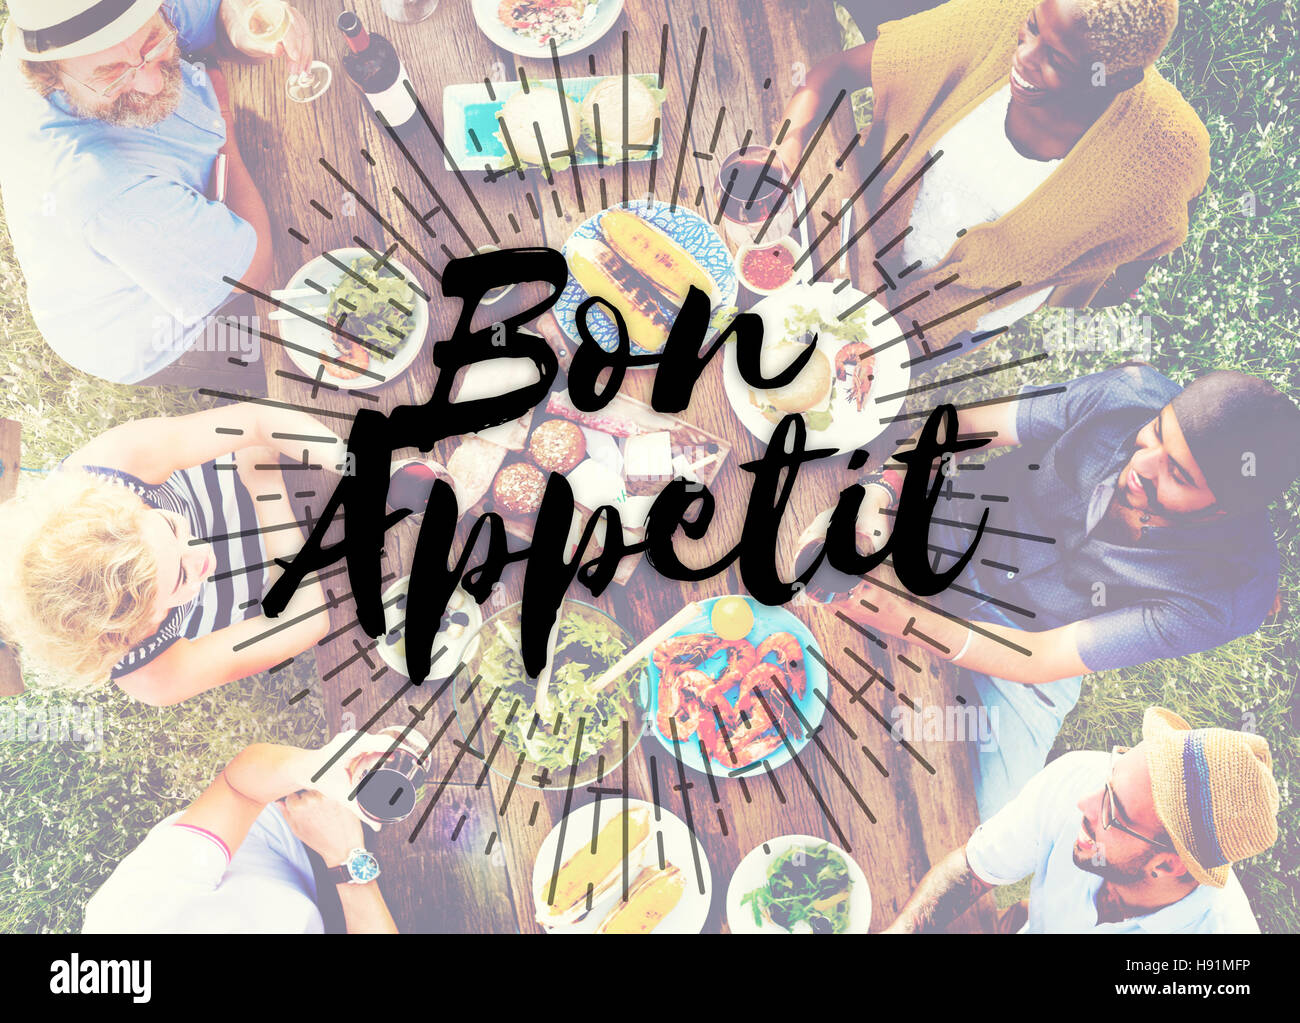 Bon Appetit Food Delicious Meal Concept - Stock Image